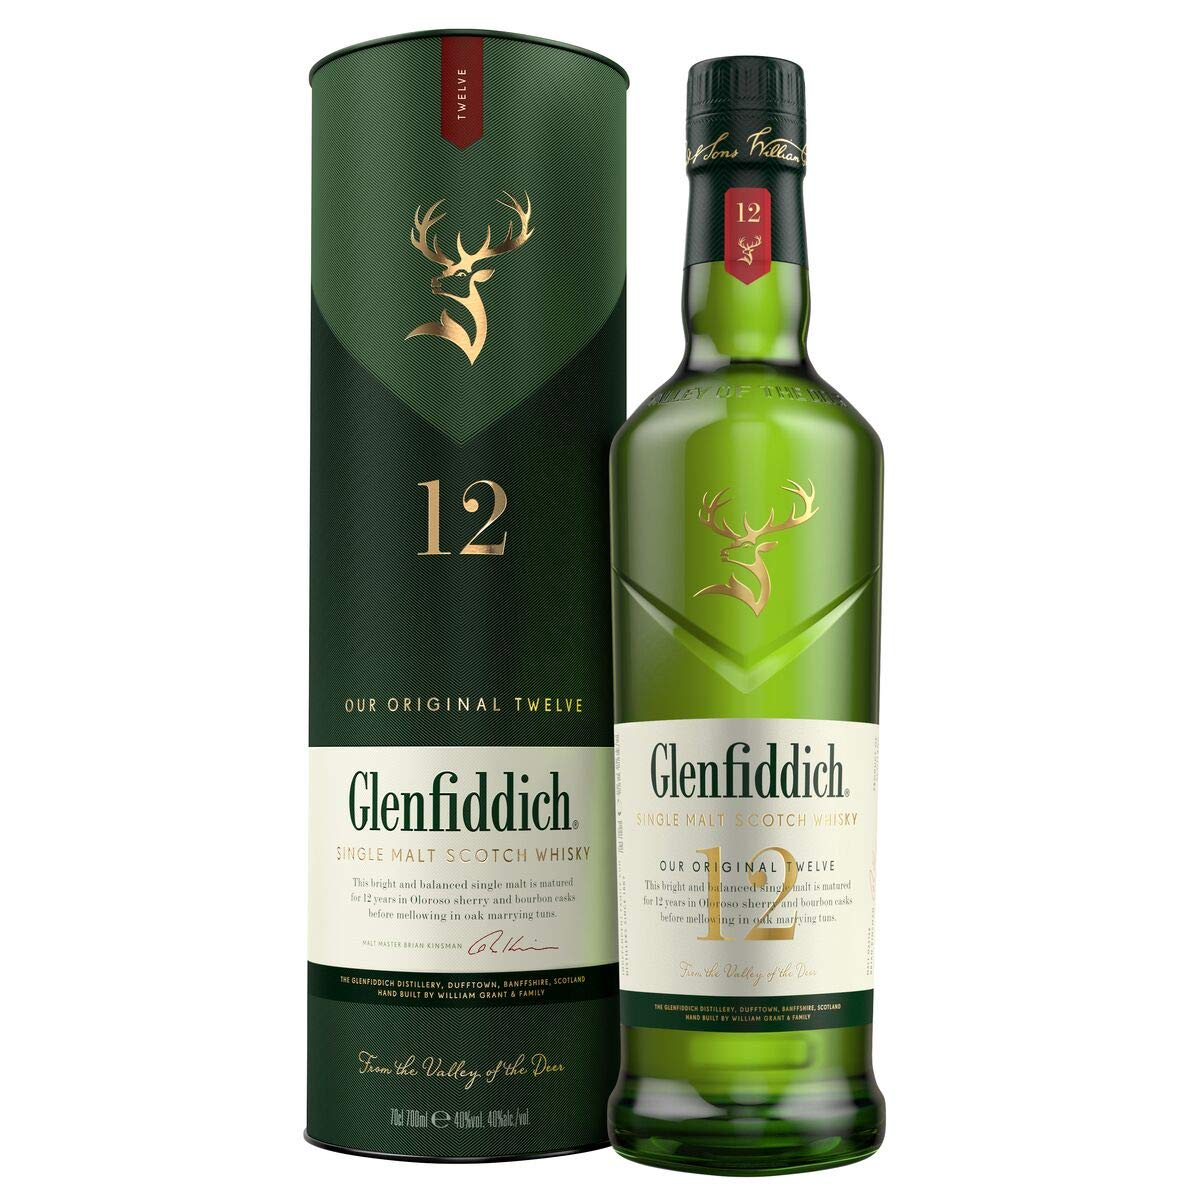 Glenfiddich 12 Year Old Whisky, 70 cl